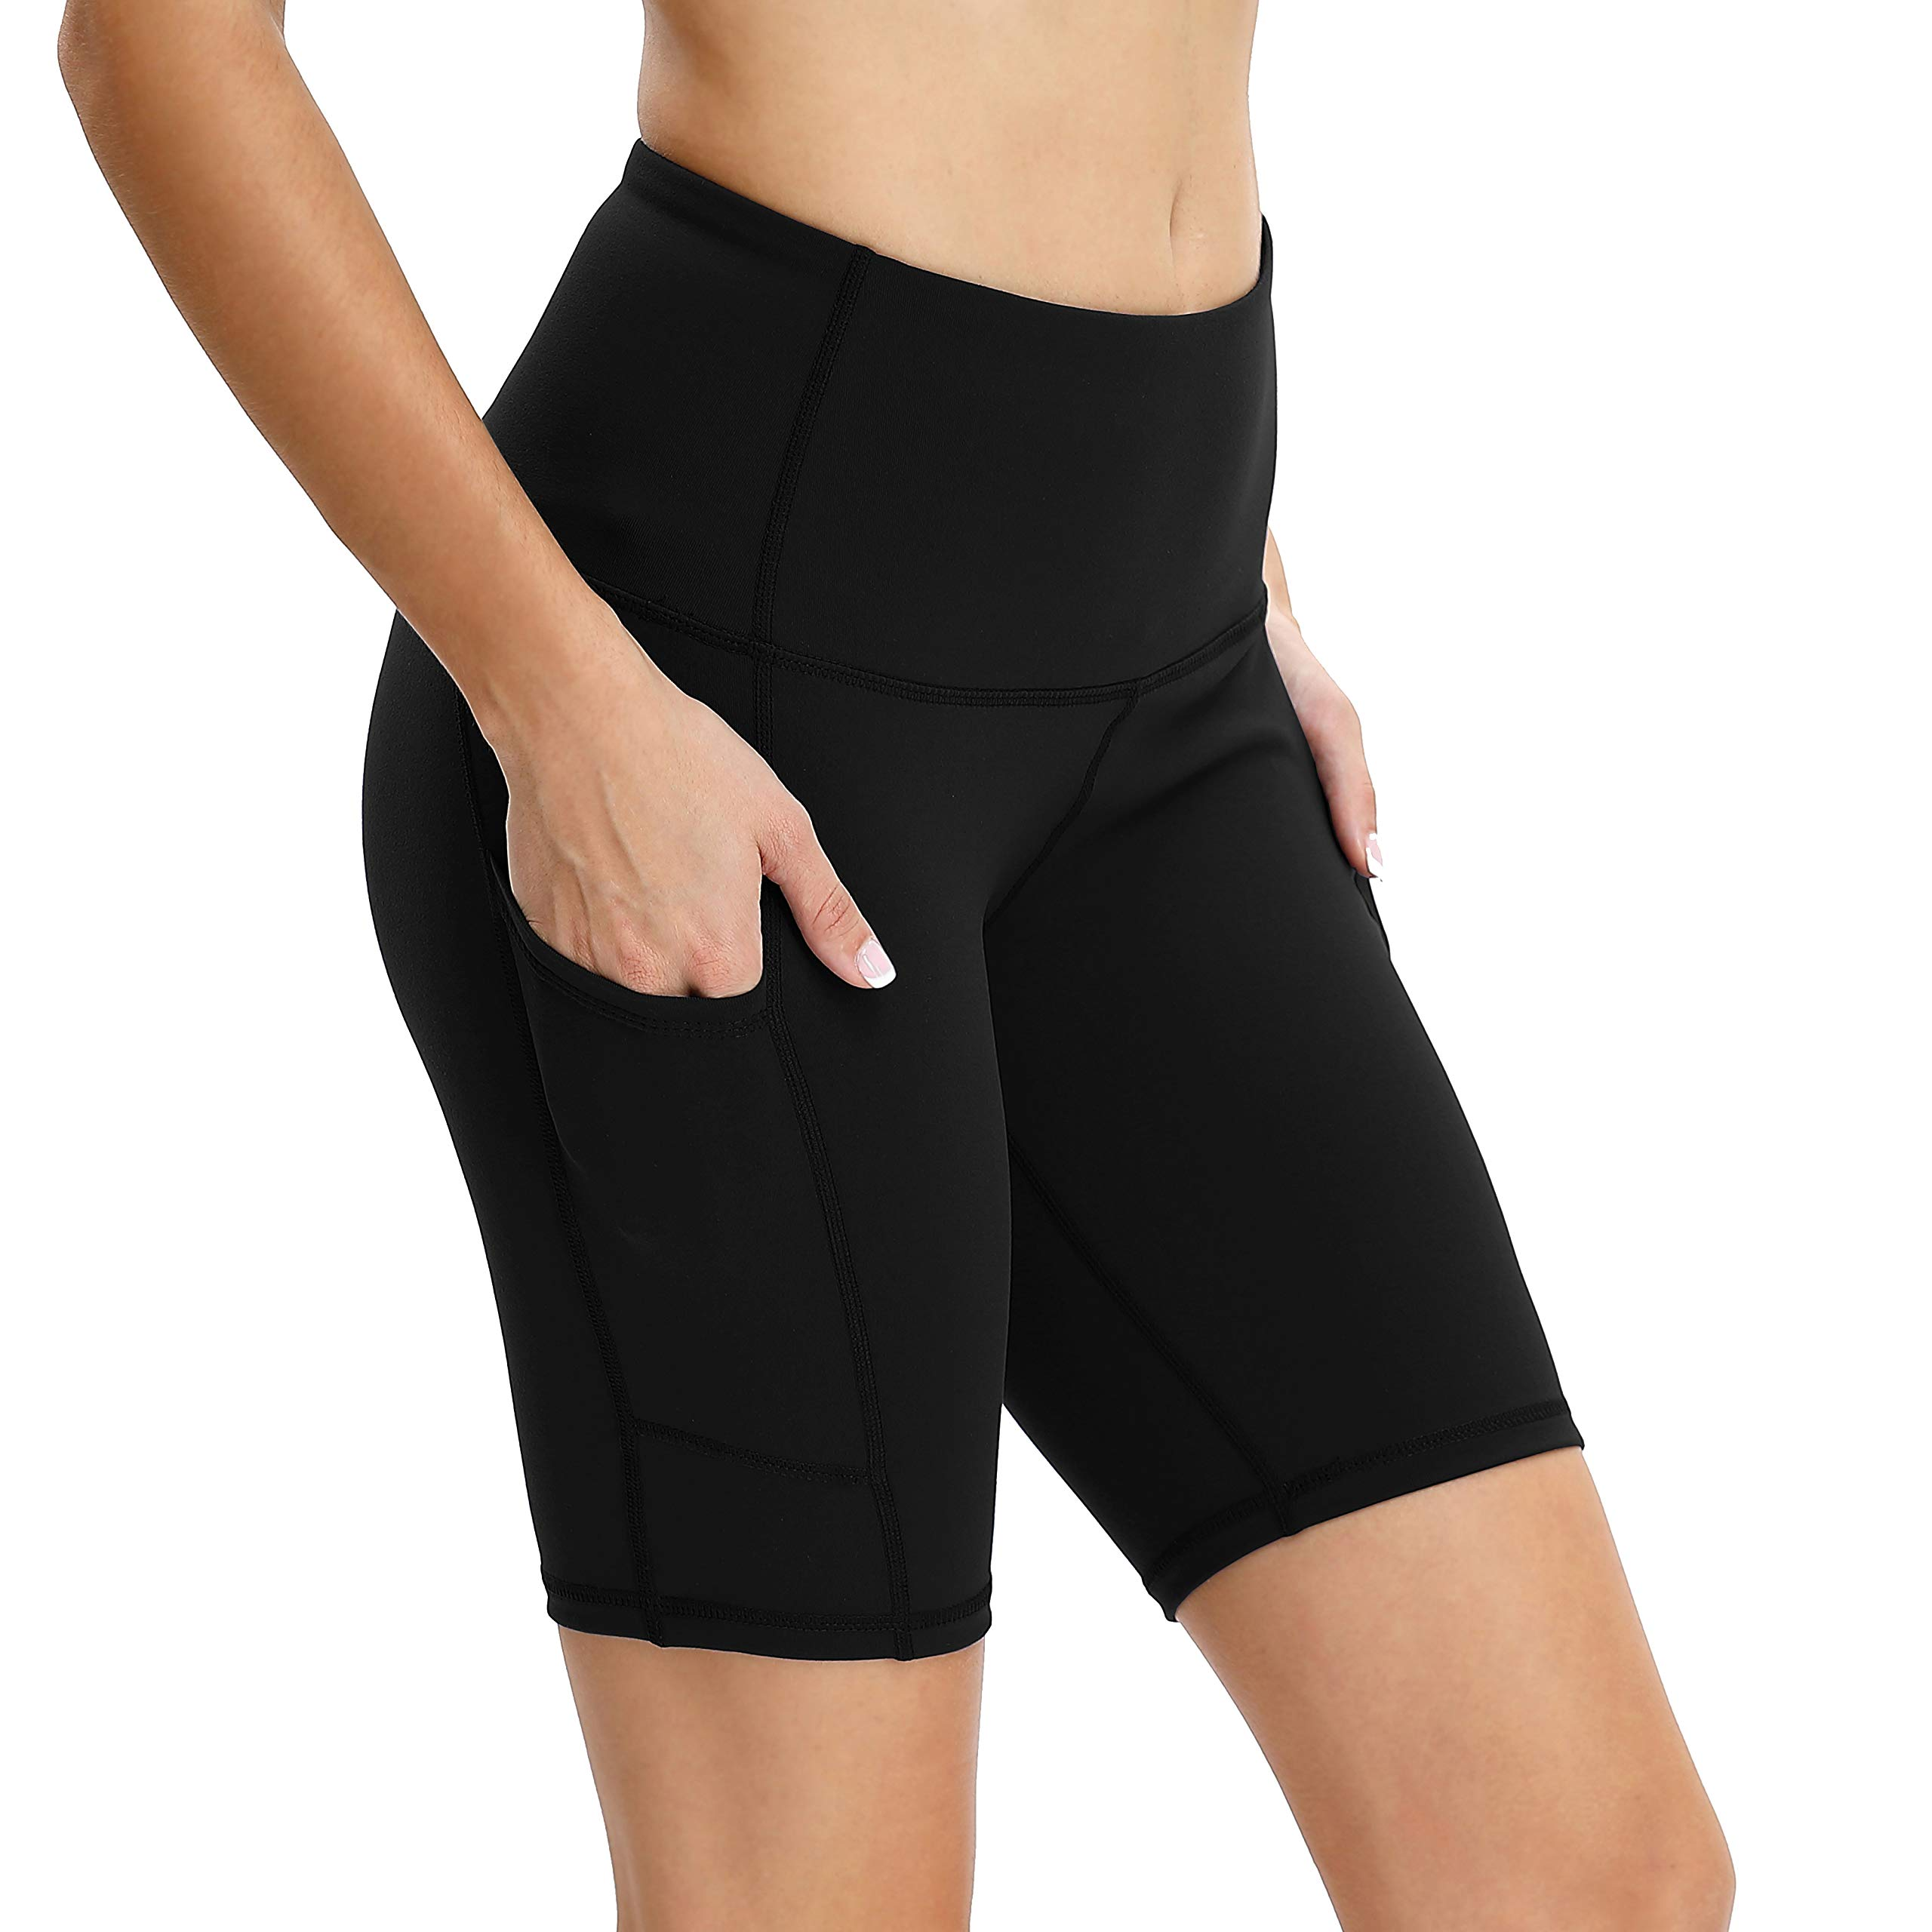 Vogyal Women's 8'' Yoga Shorts High Waist Tummy Control Workout Running Shorts with 2 Pockets -Black M